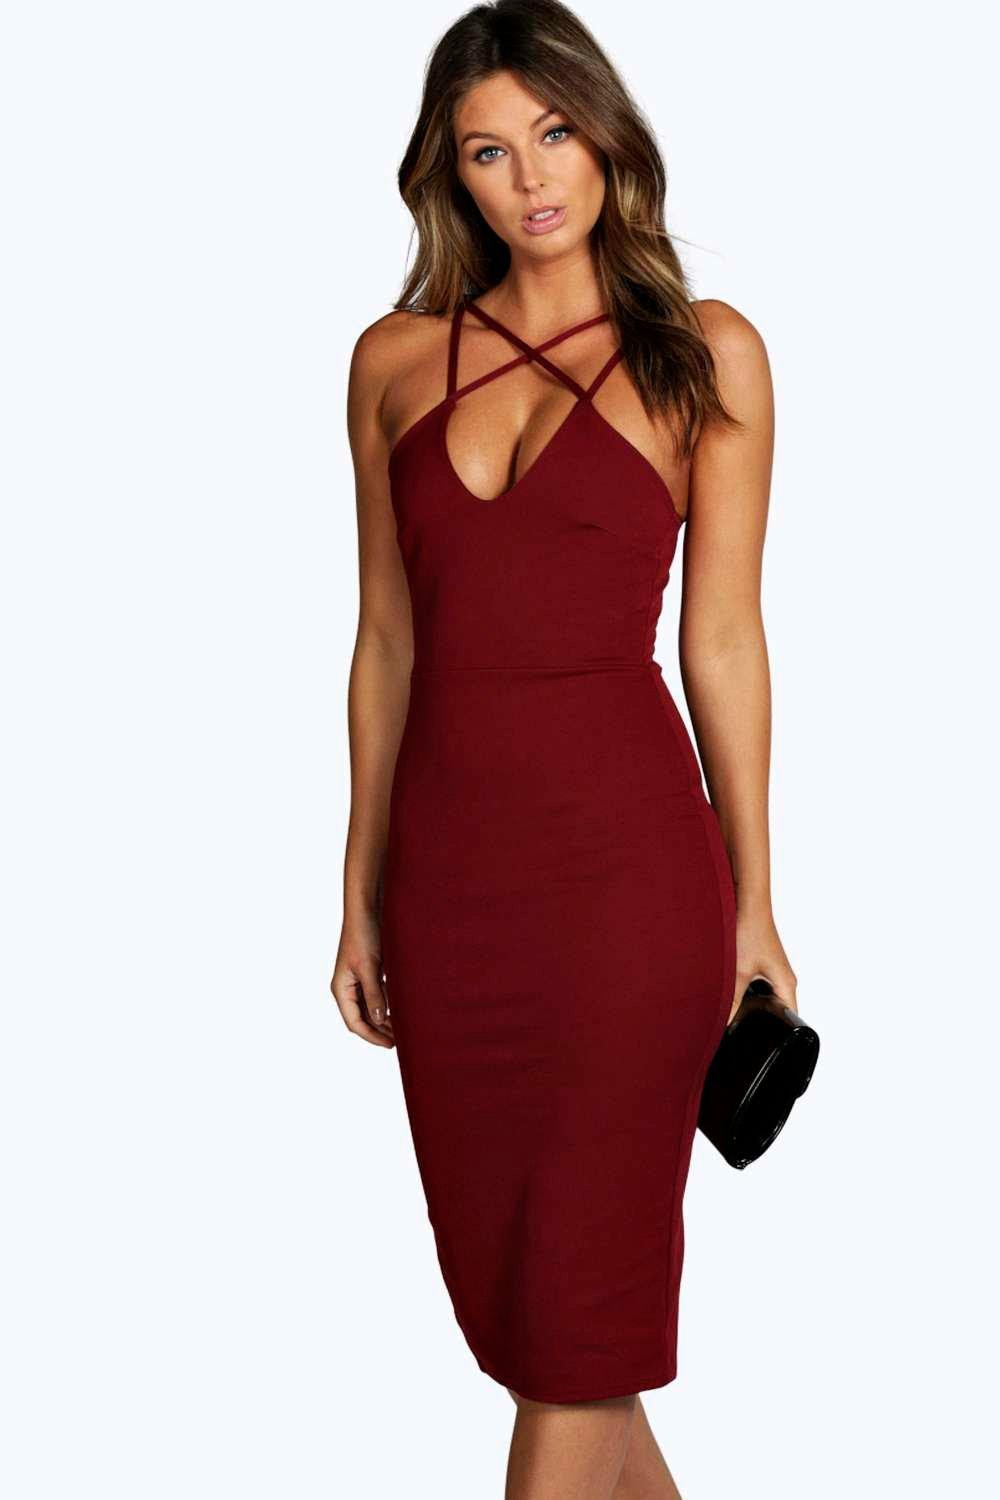 In a world the bodycon dress is what the